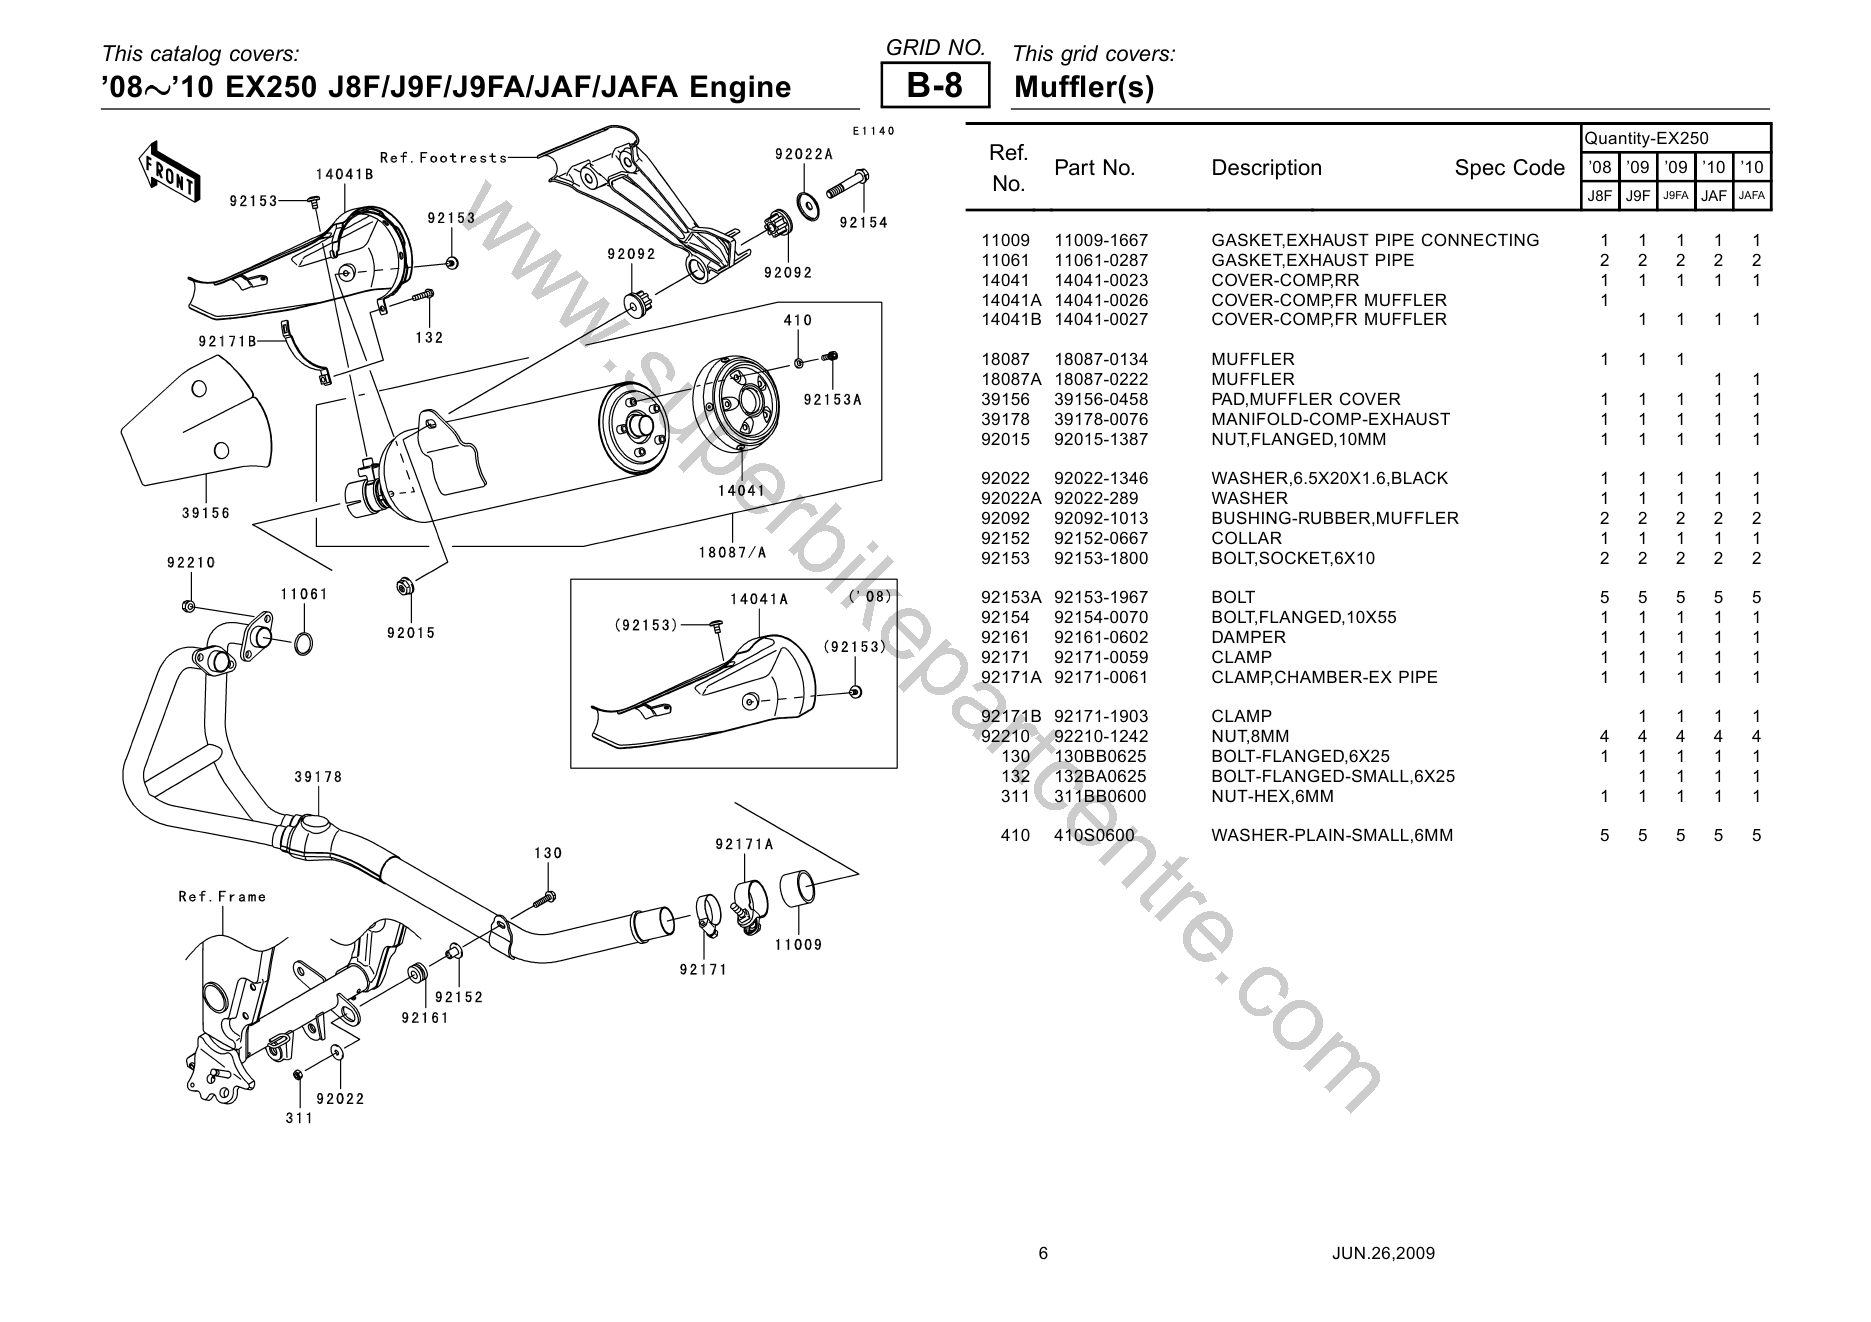 2008 Kawasaki Ninja 250r Parts Diagram